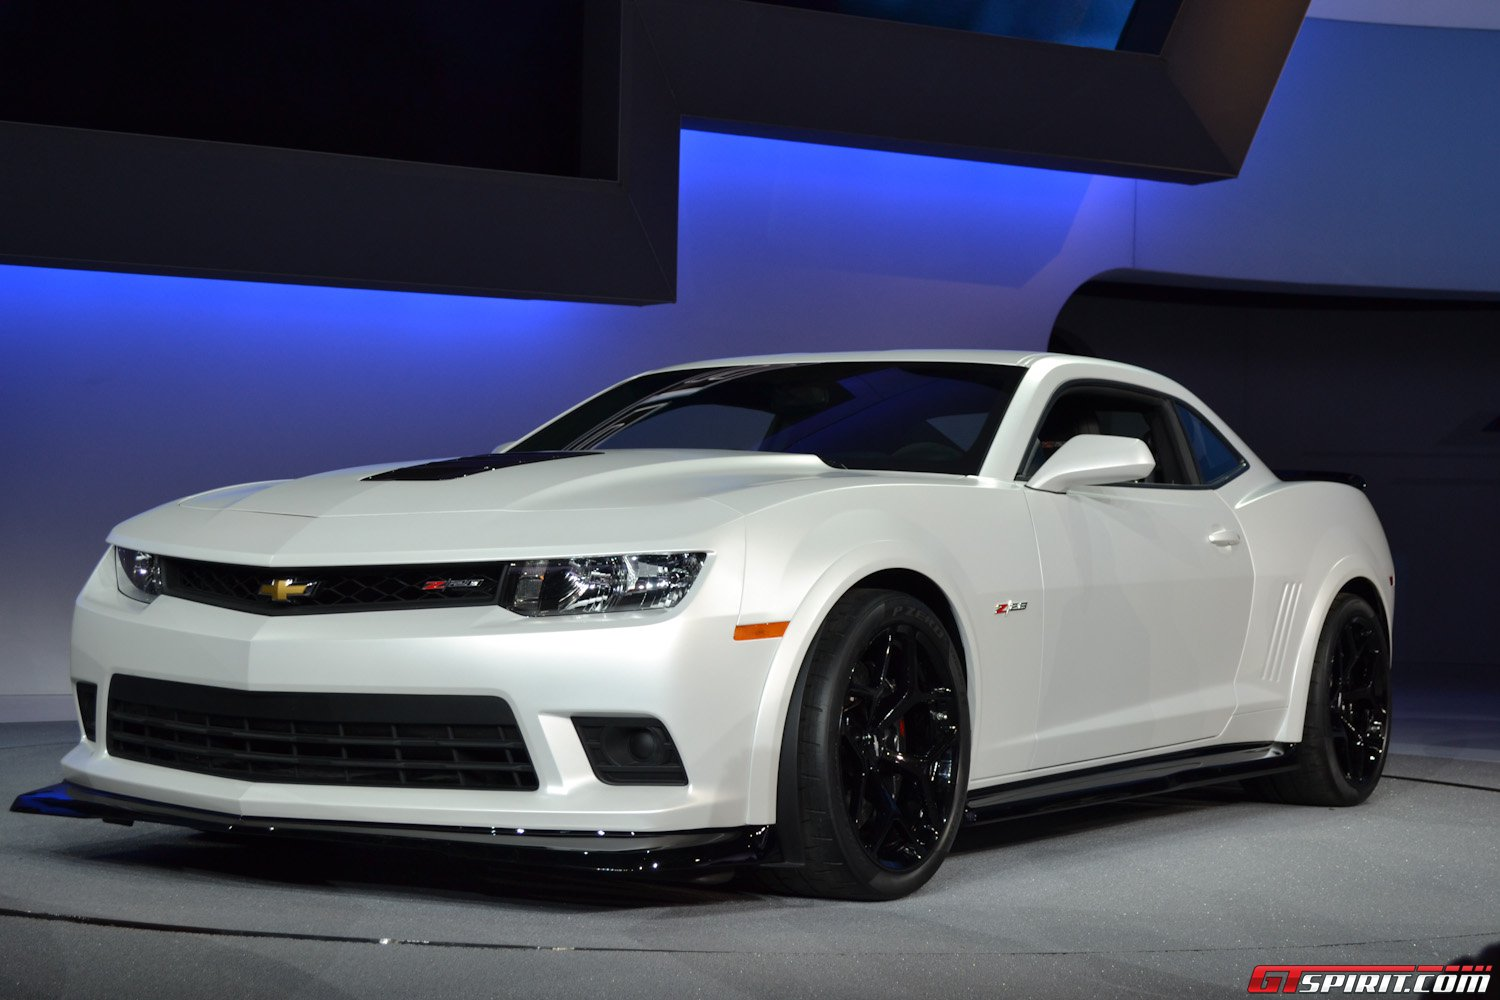 2014 Z28 Camaro Release Date.html | 2017 - 2018 Cars Reviews